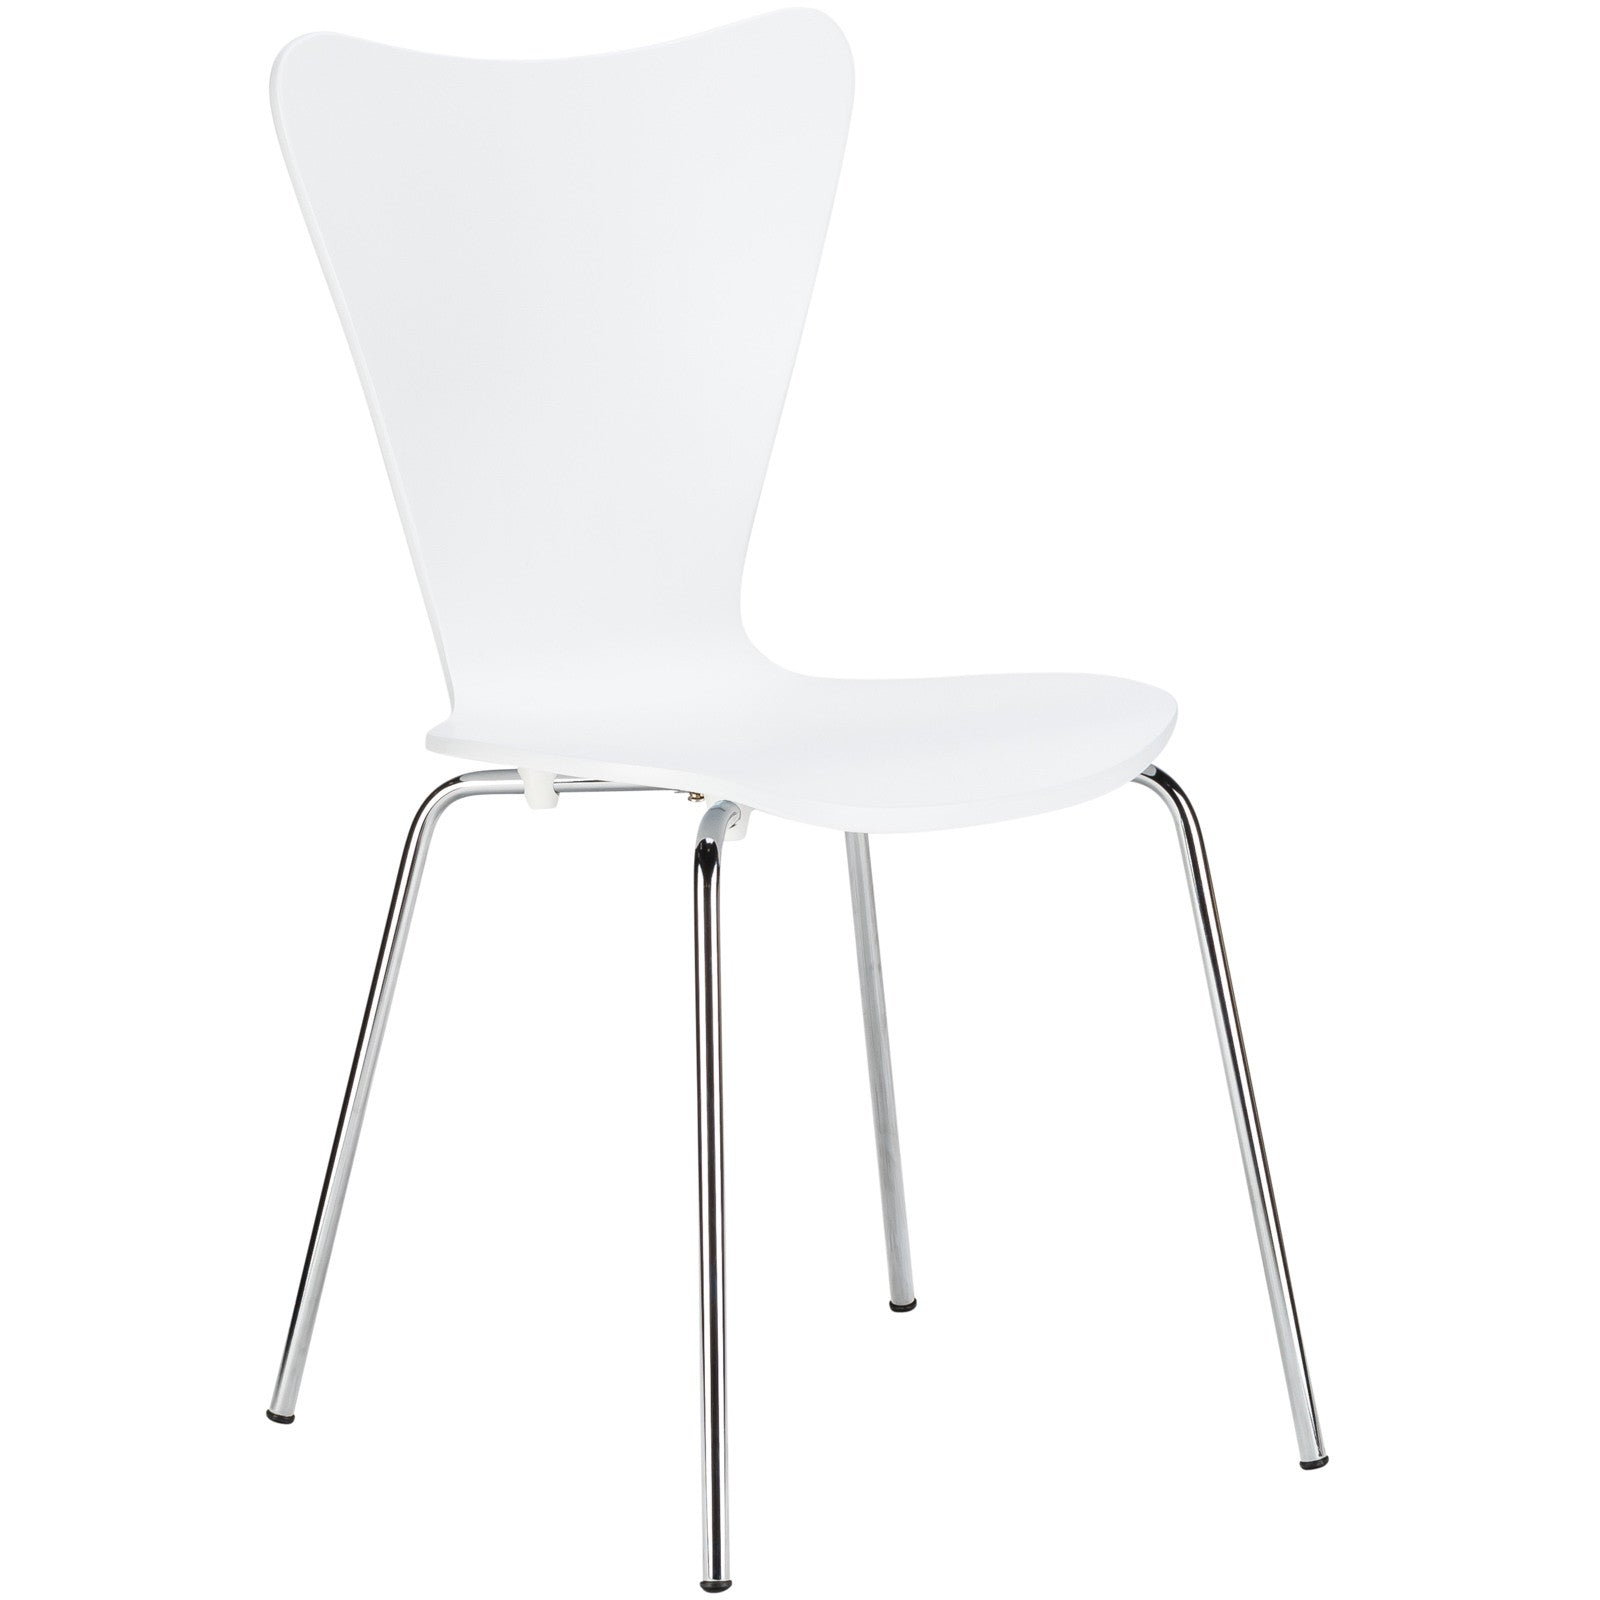 Series 7 Style Dining Chair EasyModernFurniture